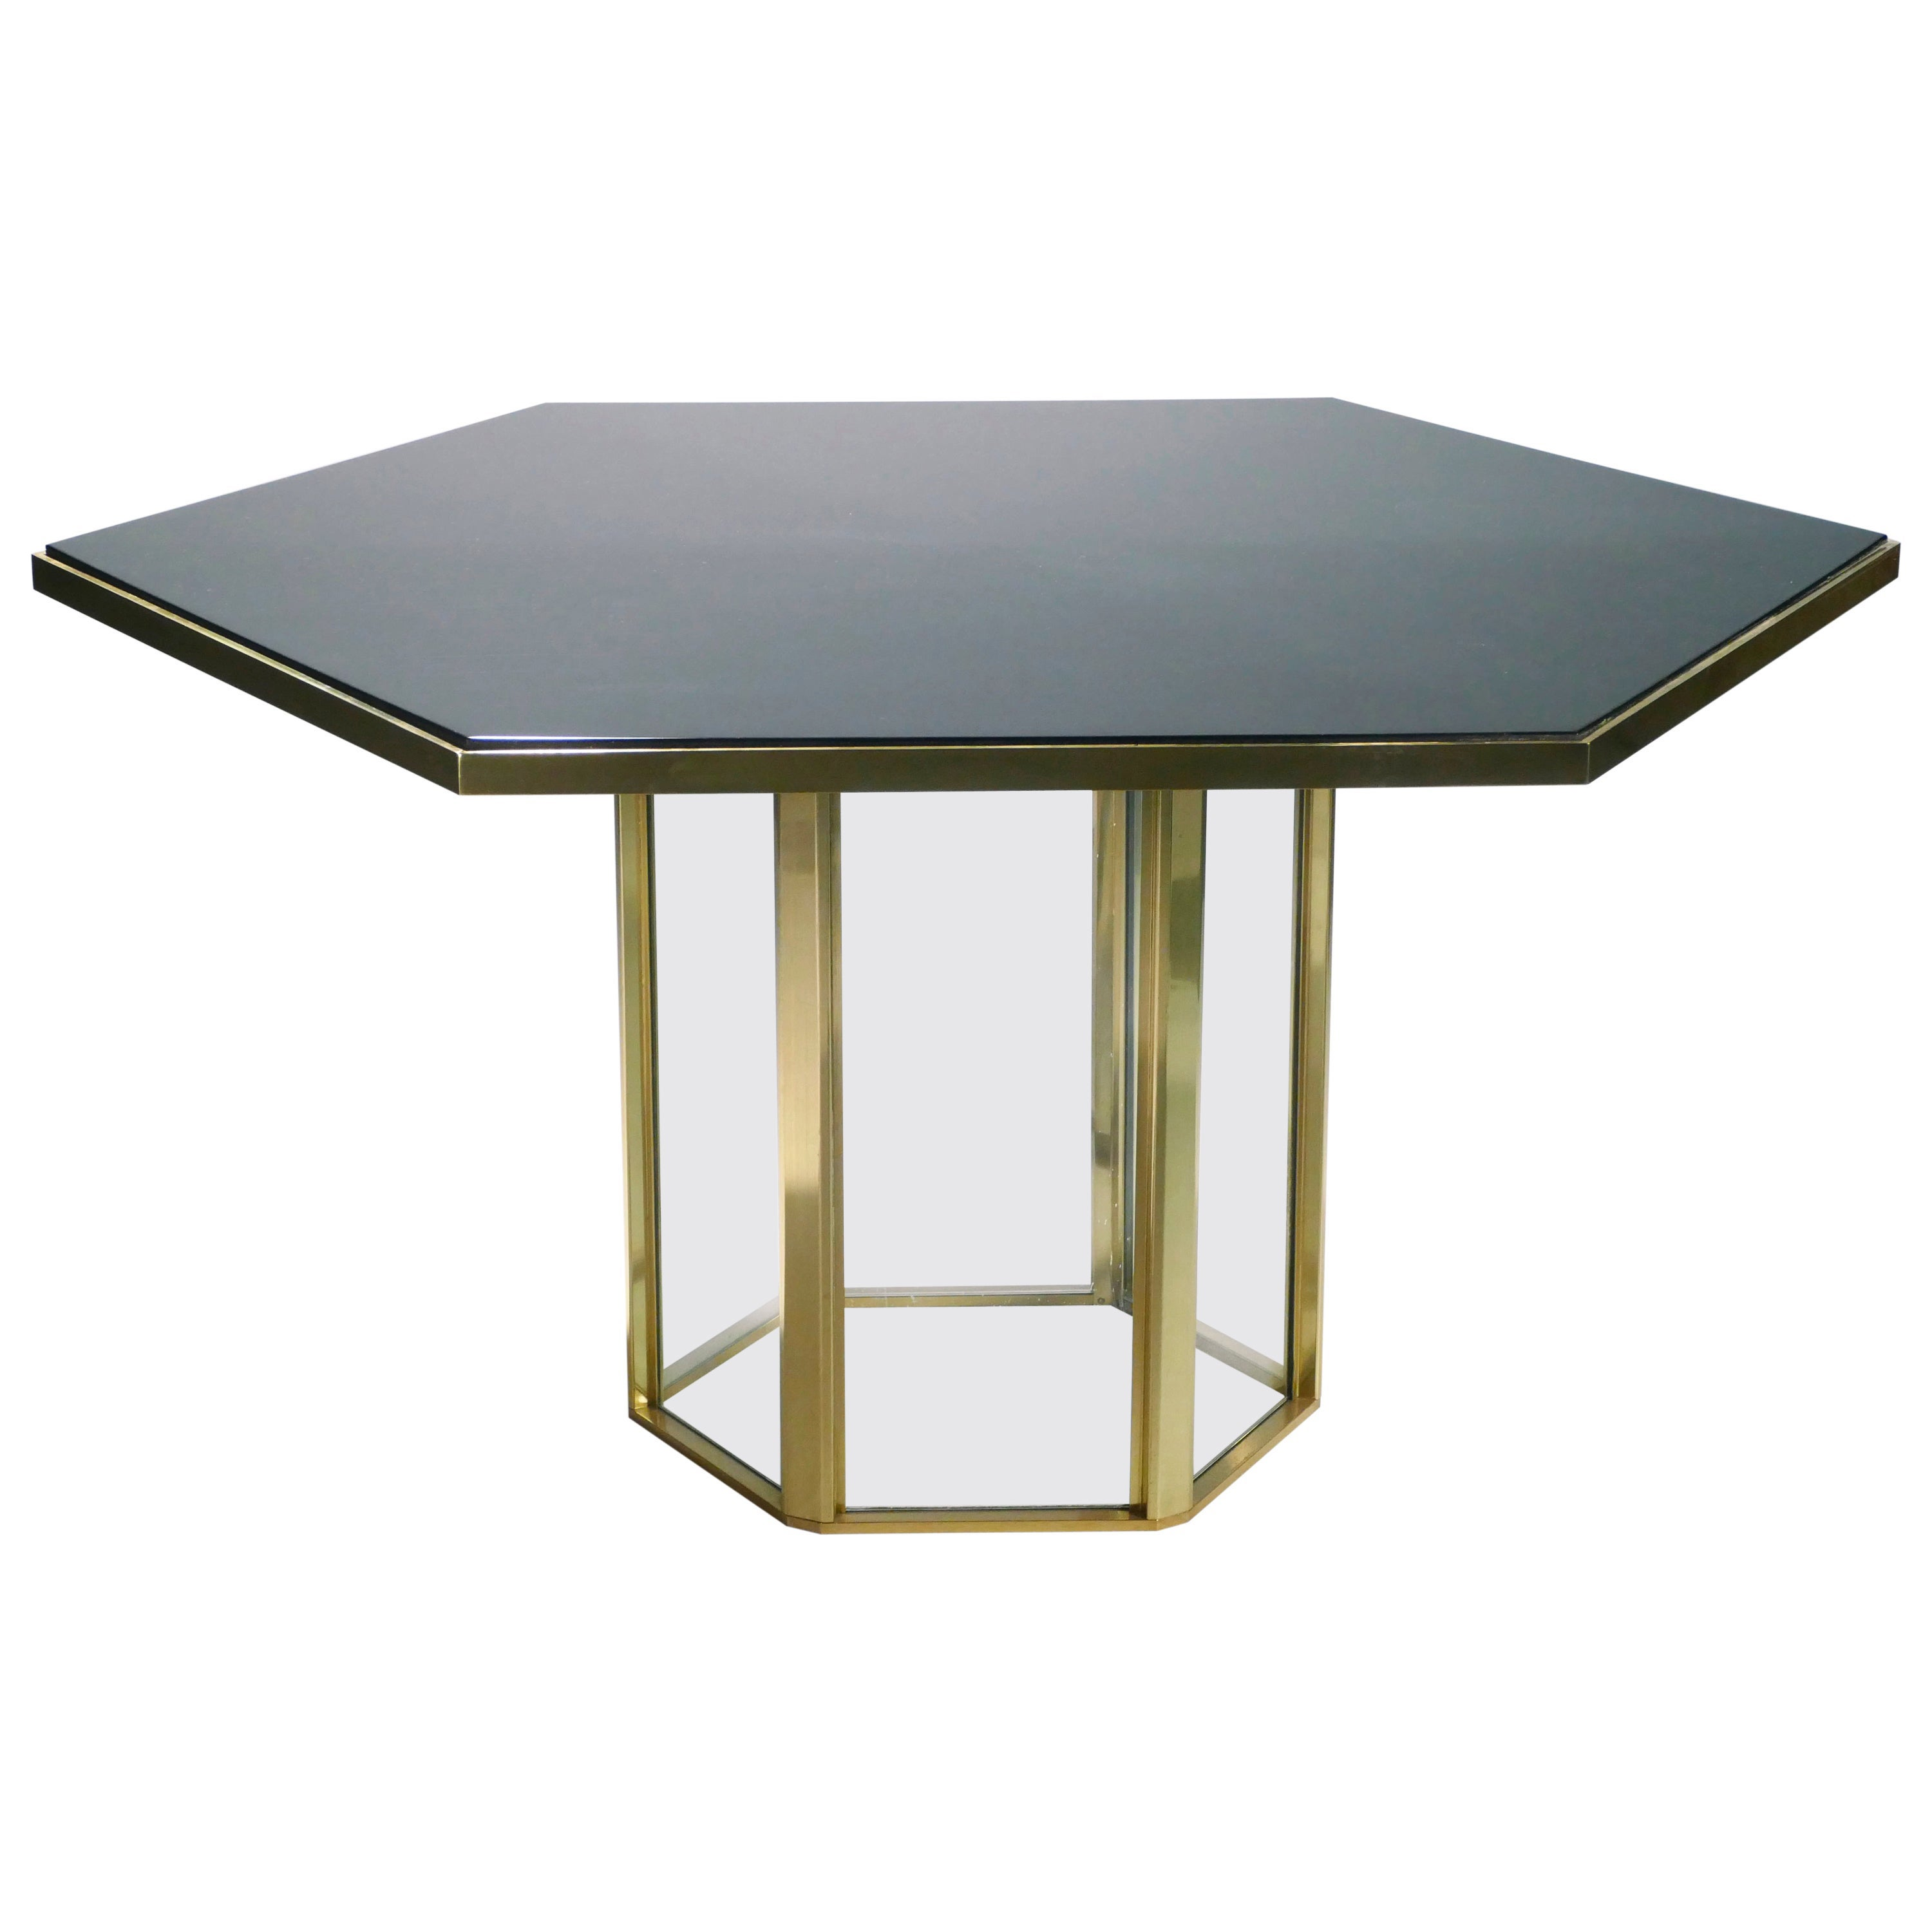 Midcentury Romeo Rega Black Lacquer Brass and Glass Dining Table, 1970s